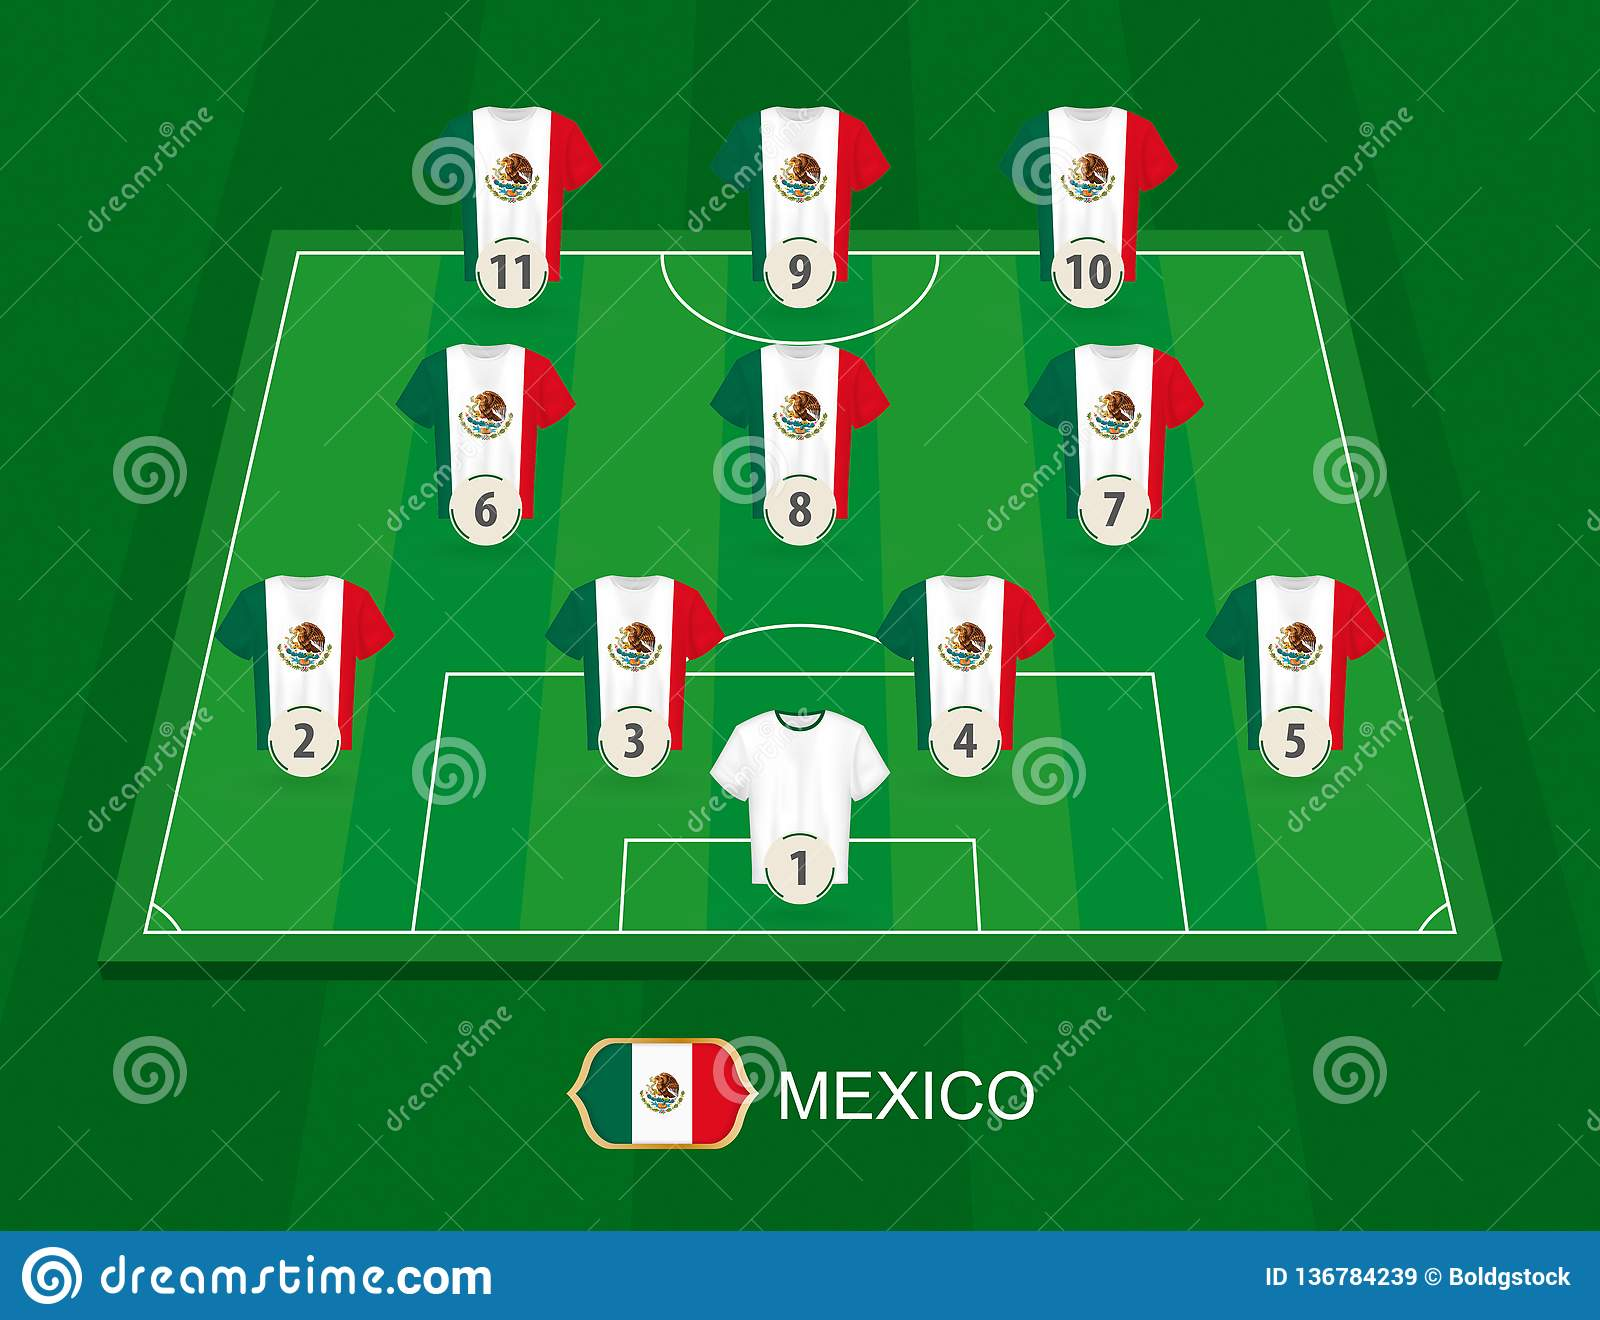 Soccer Field With The Mexico National Team Players Stock Vector